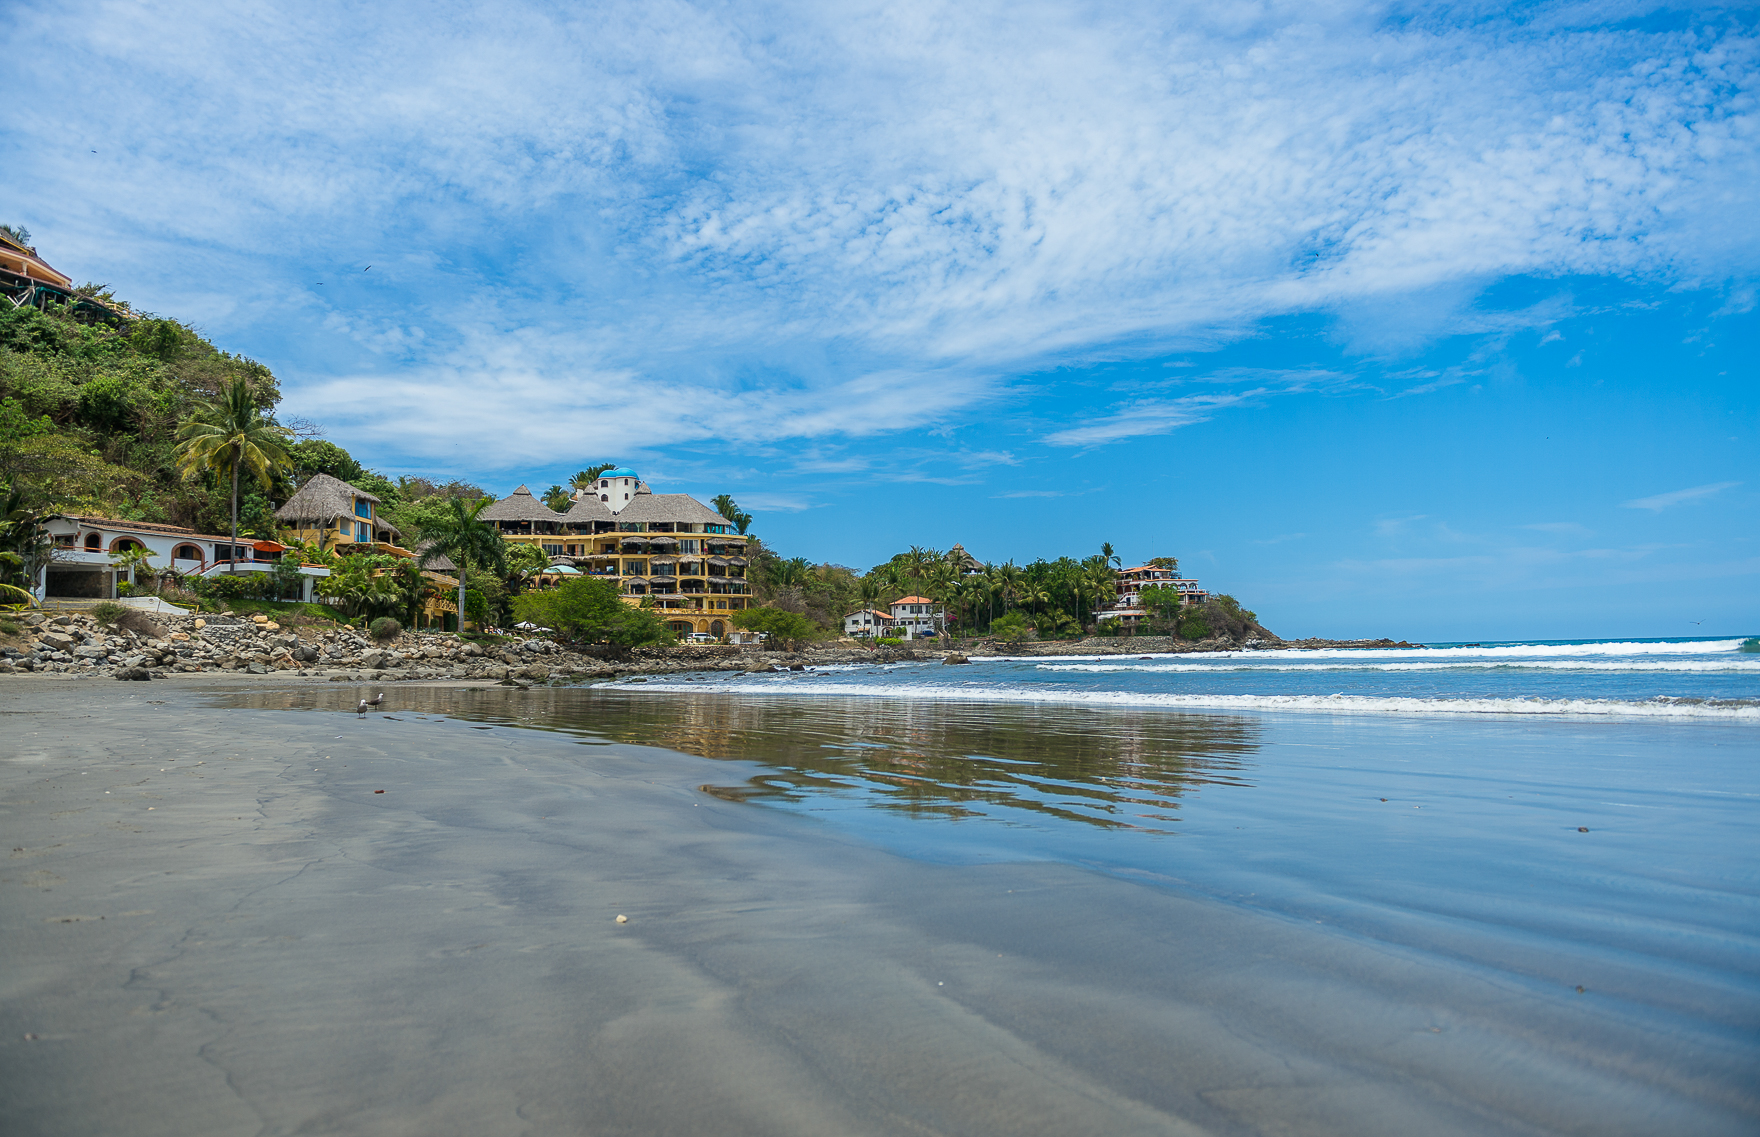 amor-boutique-hotel-sayulita-mexico-surf-beach